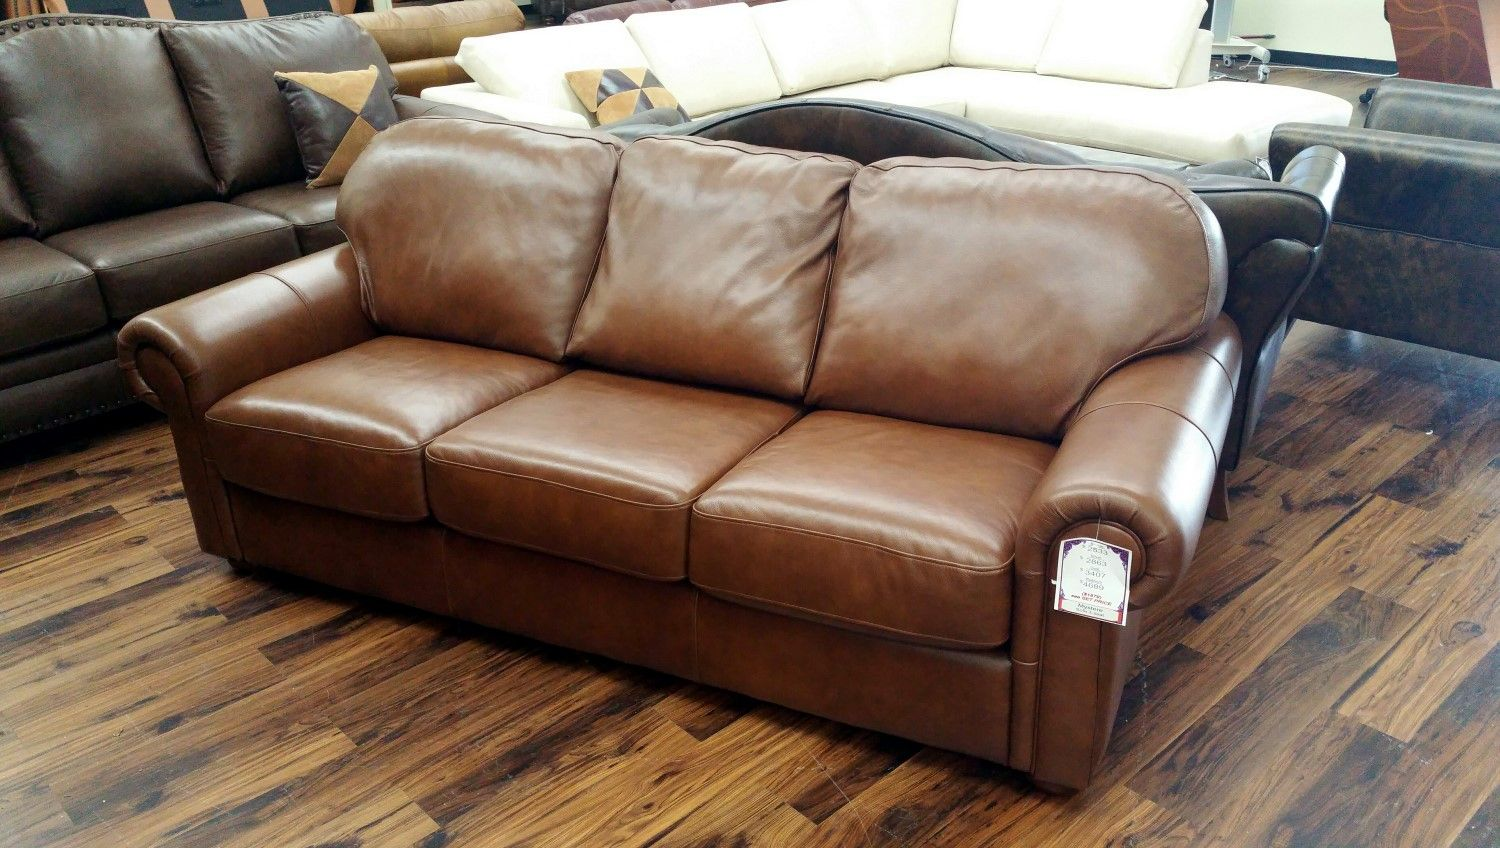 The Leather Sofa Outlet